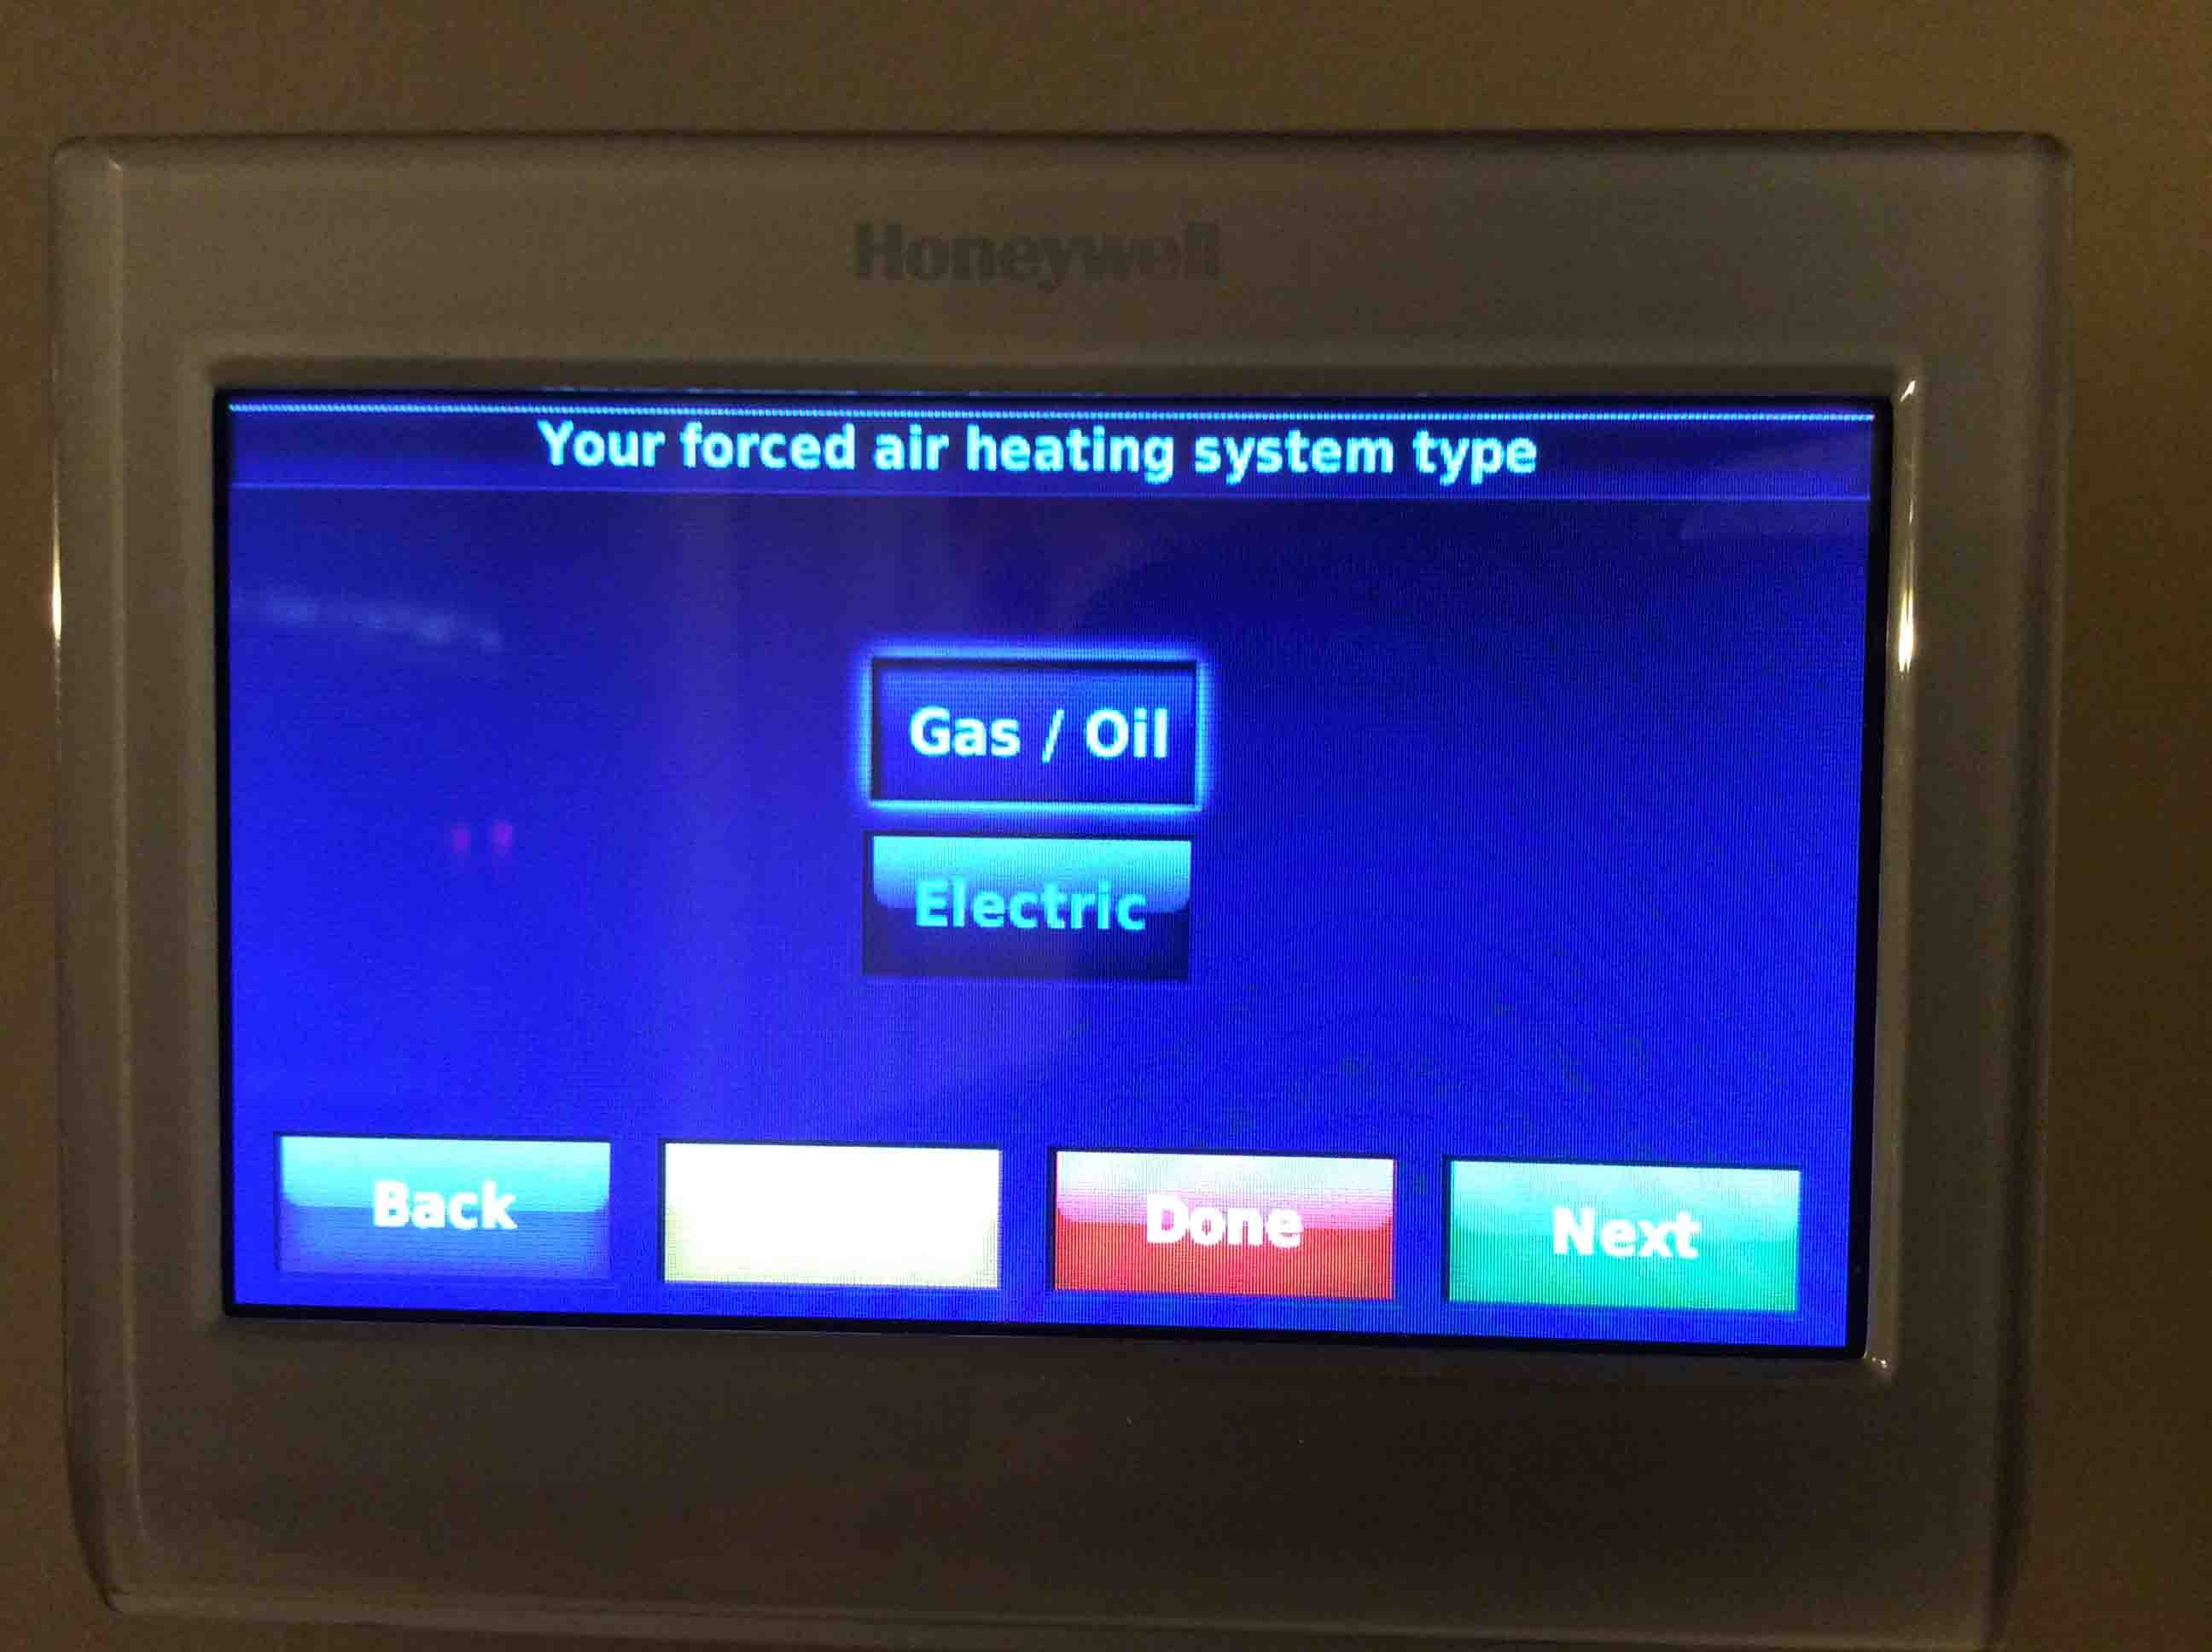 Setting temperature differential honeywell smart for Types of forced air heating systems